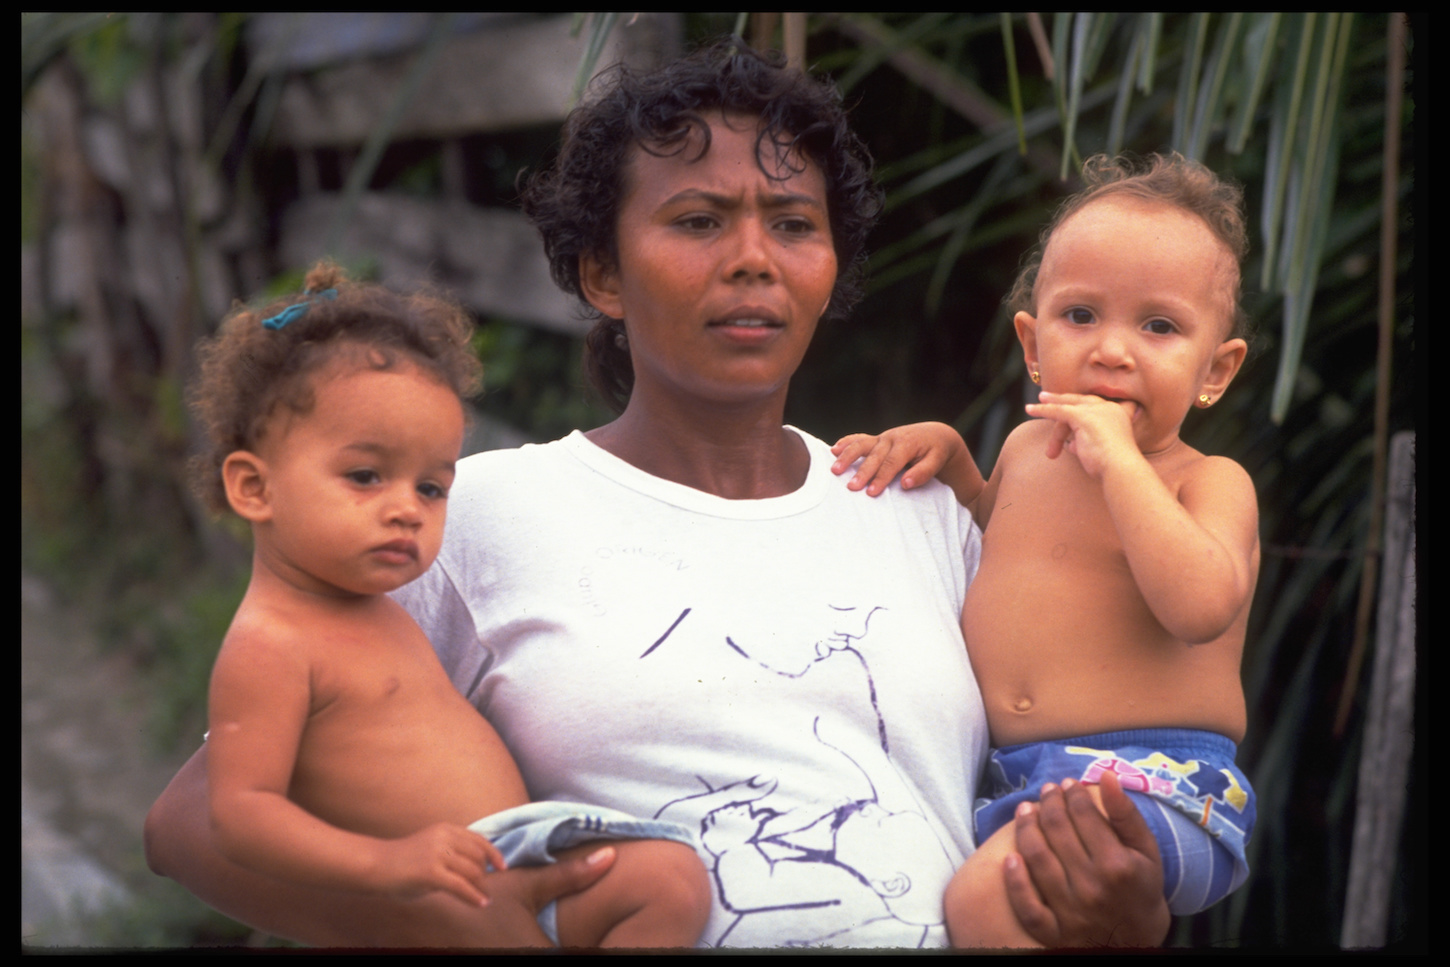 In Recife, Brazil mothers like this one are taking care to protect their children from the ZIka virus.